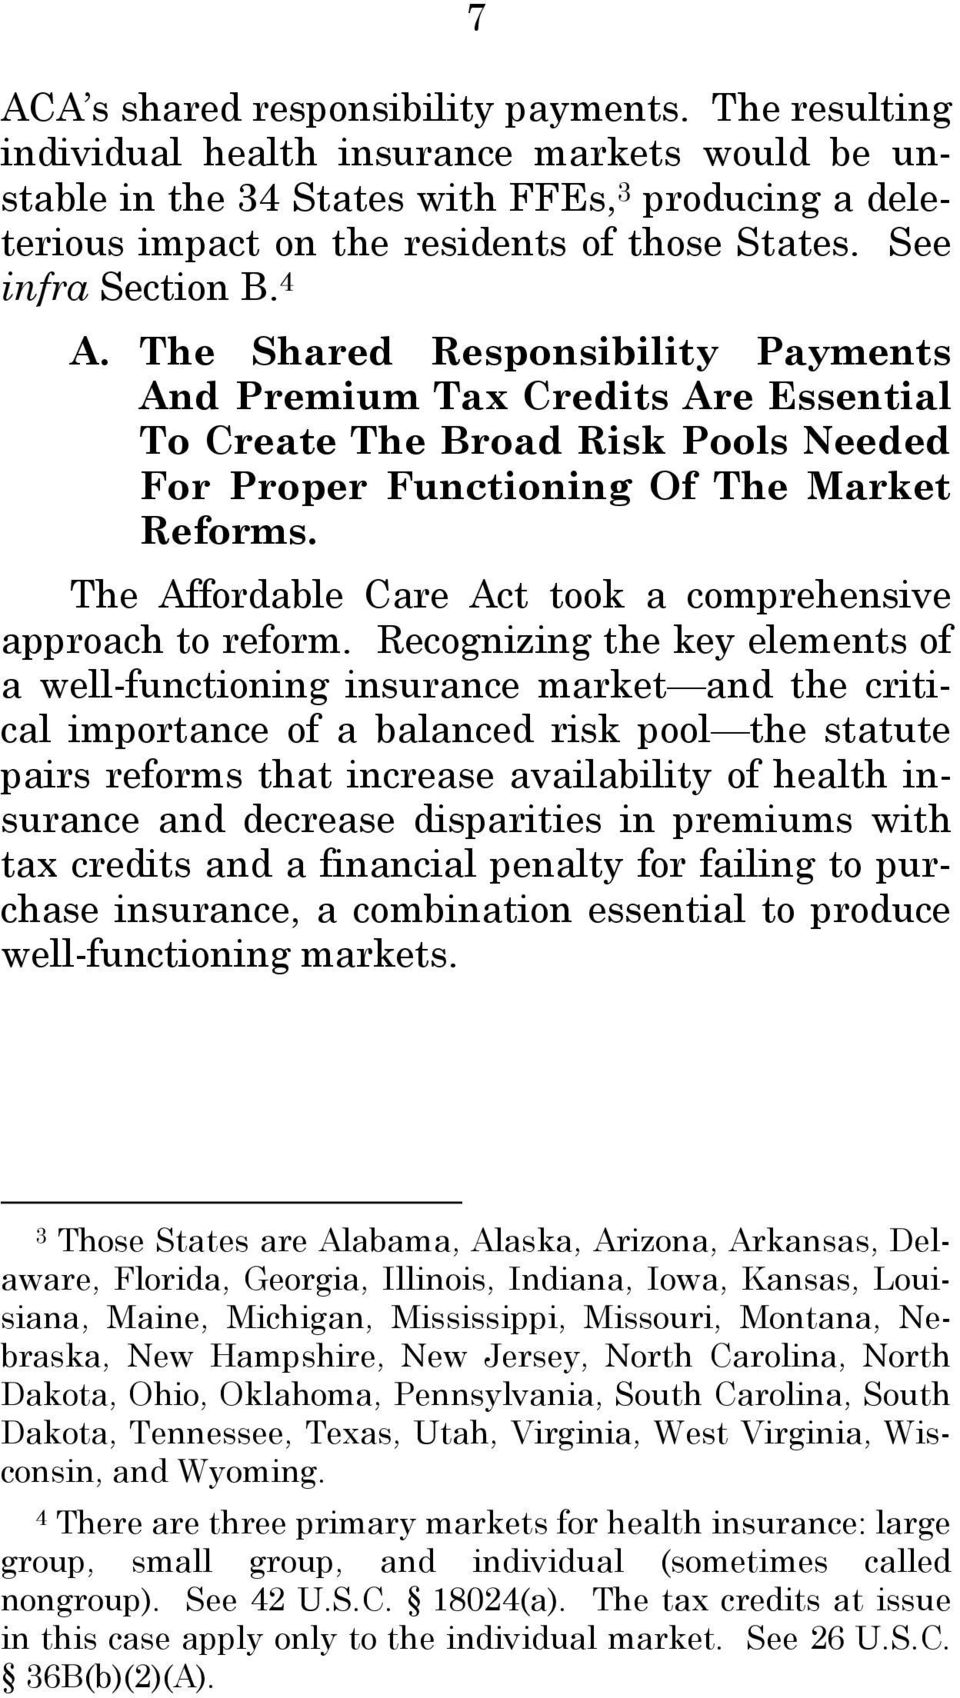 The Shared Responsibility Payments And Premium Tax Credits Are Essential To Create The Broad Risk Pools Needed For Proper Functioning Of The Market Reforms.